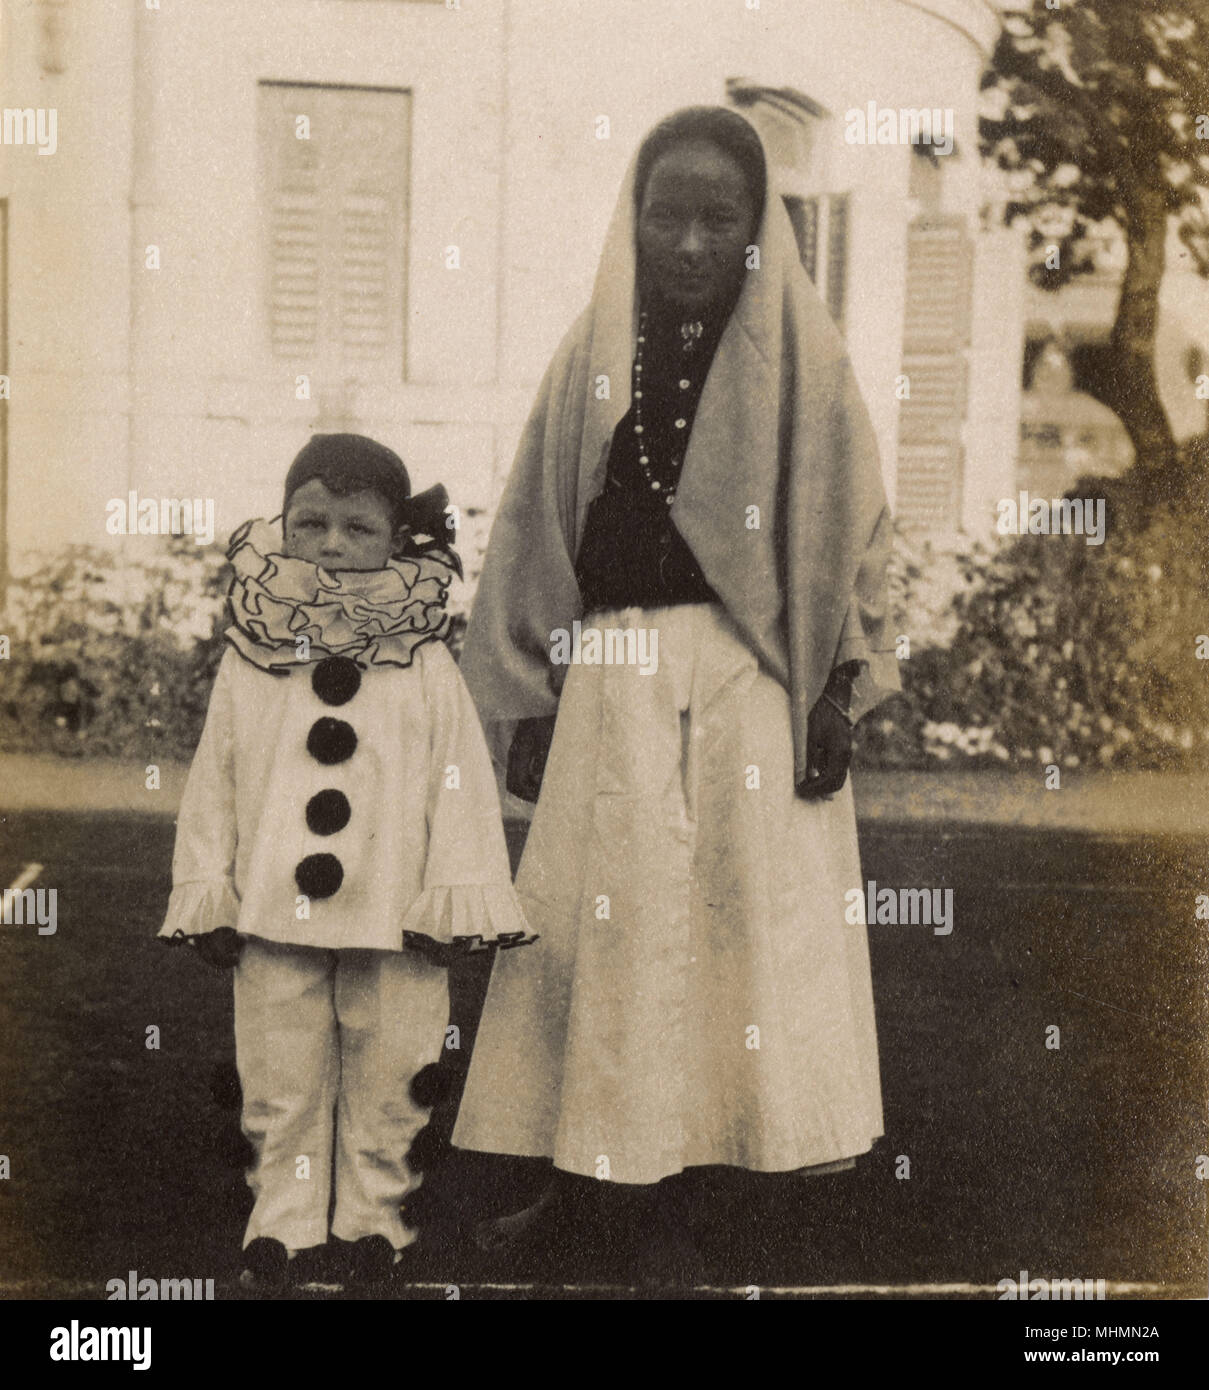 A little boy dressed up in a clown fancy dress costume for a party.  He appears to be accompanied by his nurse, or ayah - the photograph looks to be taken on the Indian sub-continent.       Date: 1920s - Stock Image